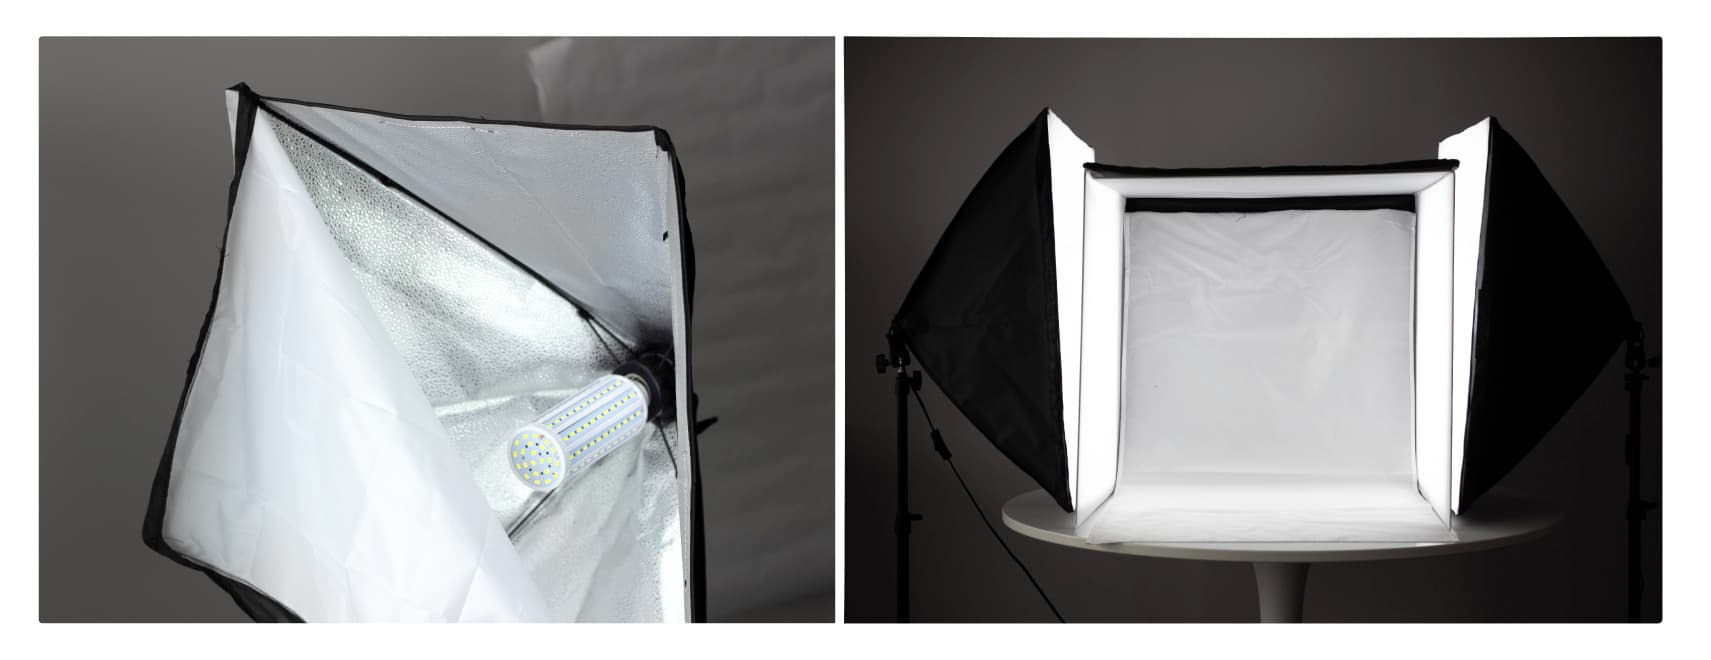 Two softboxes with LED bulbs